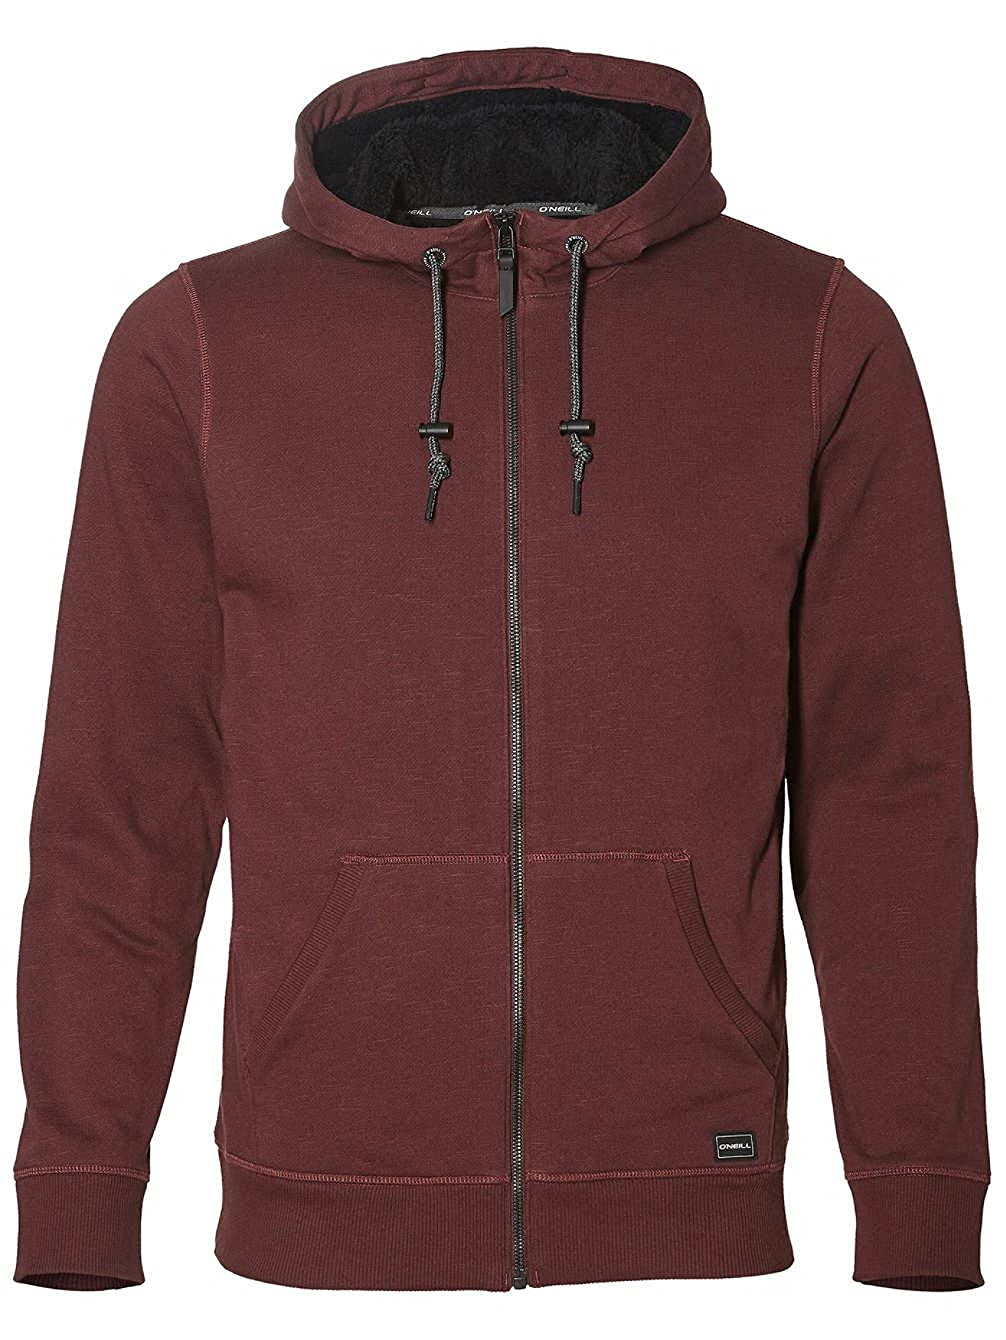 O'Neill Herren Port Royal^O 'Neill Jack 's Base Sherpa Super Fleece XXL Shirts & Fleece